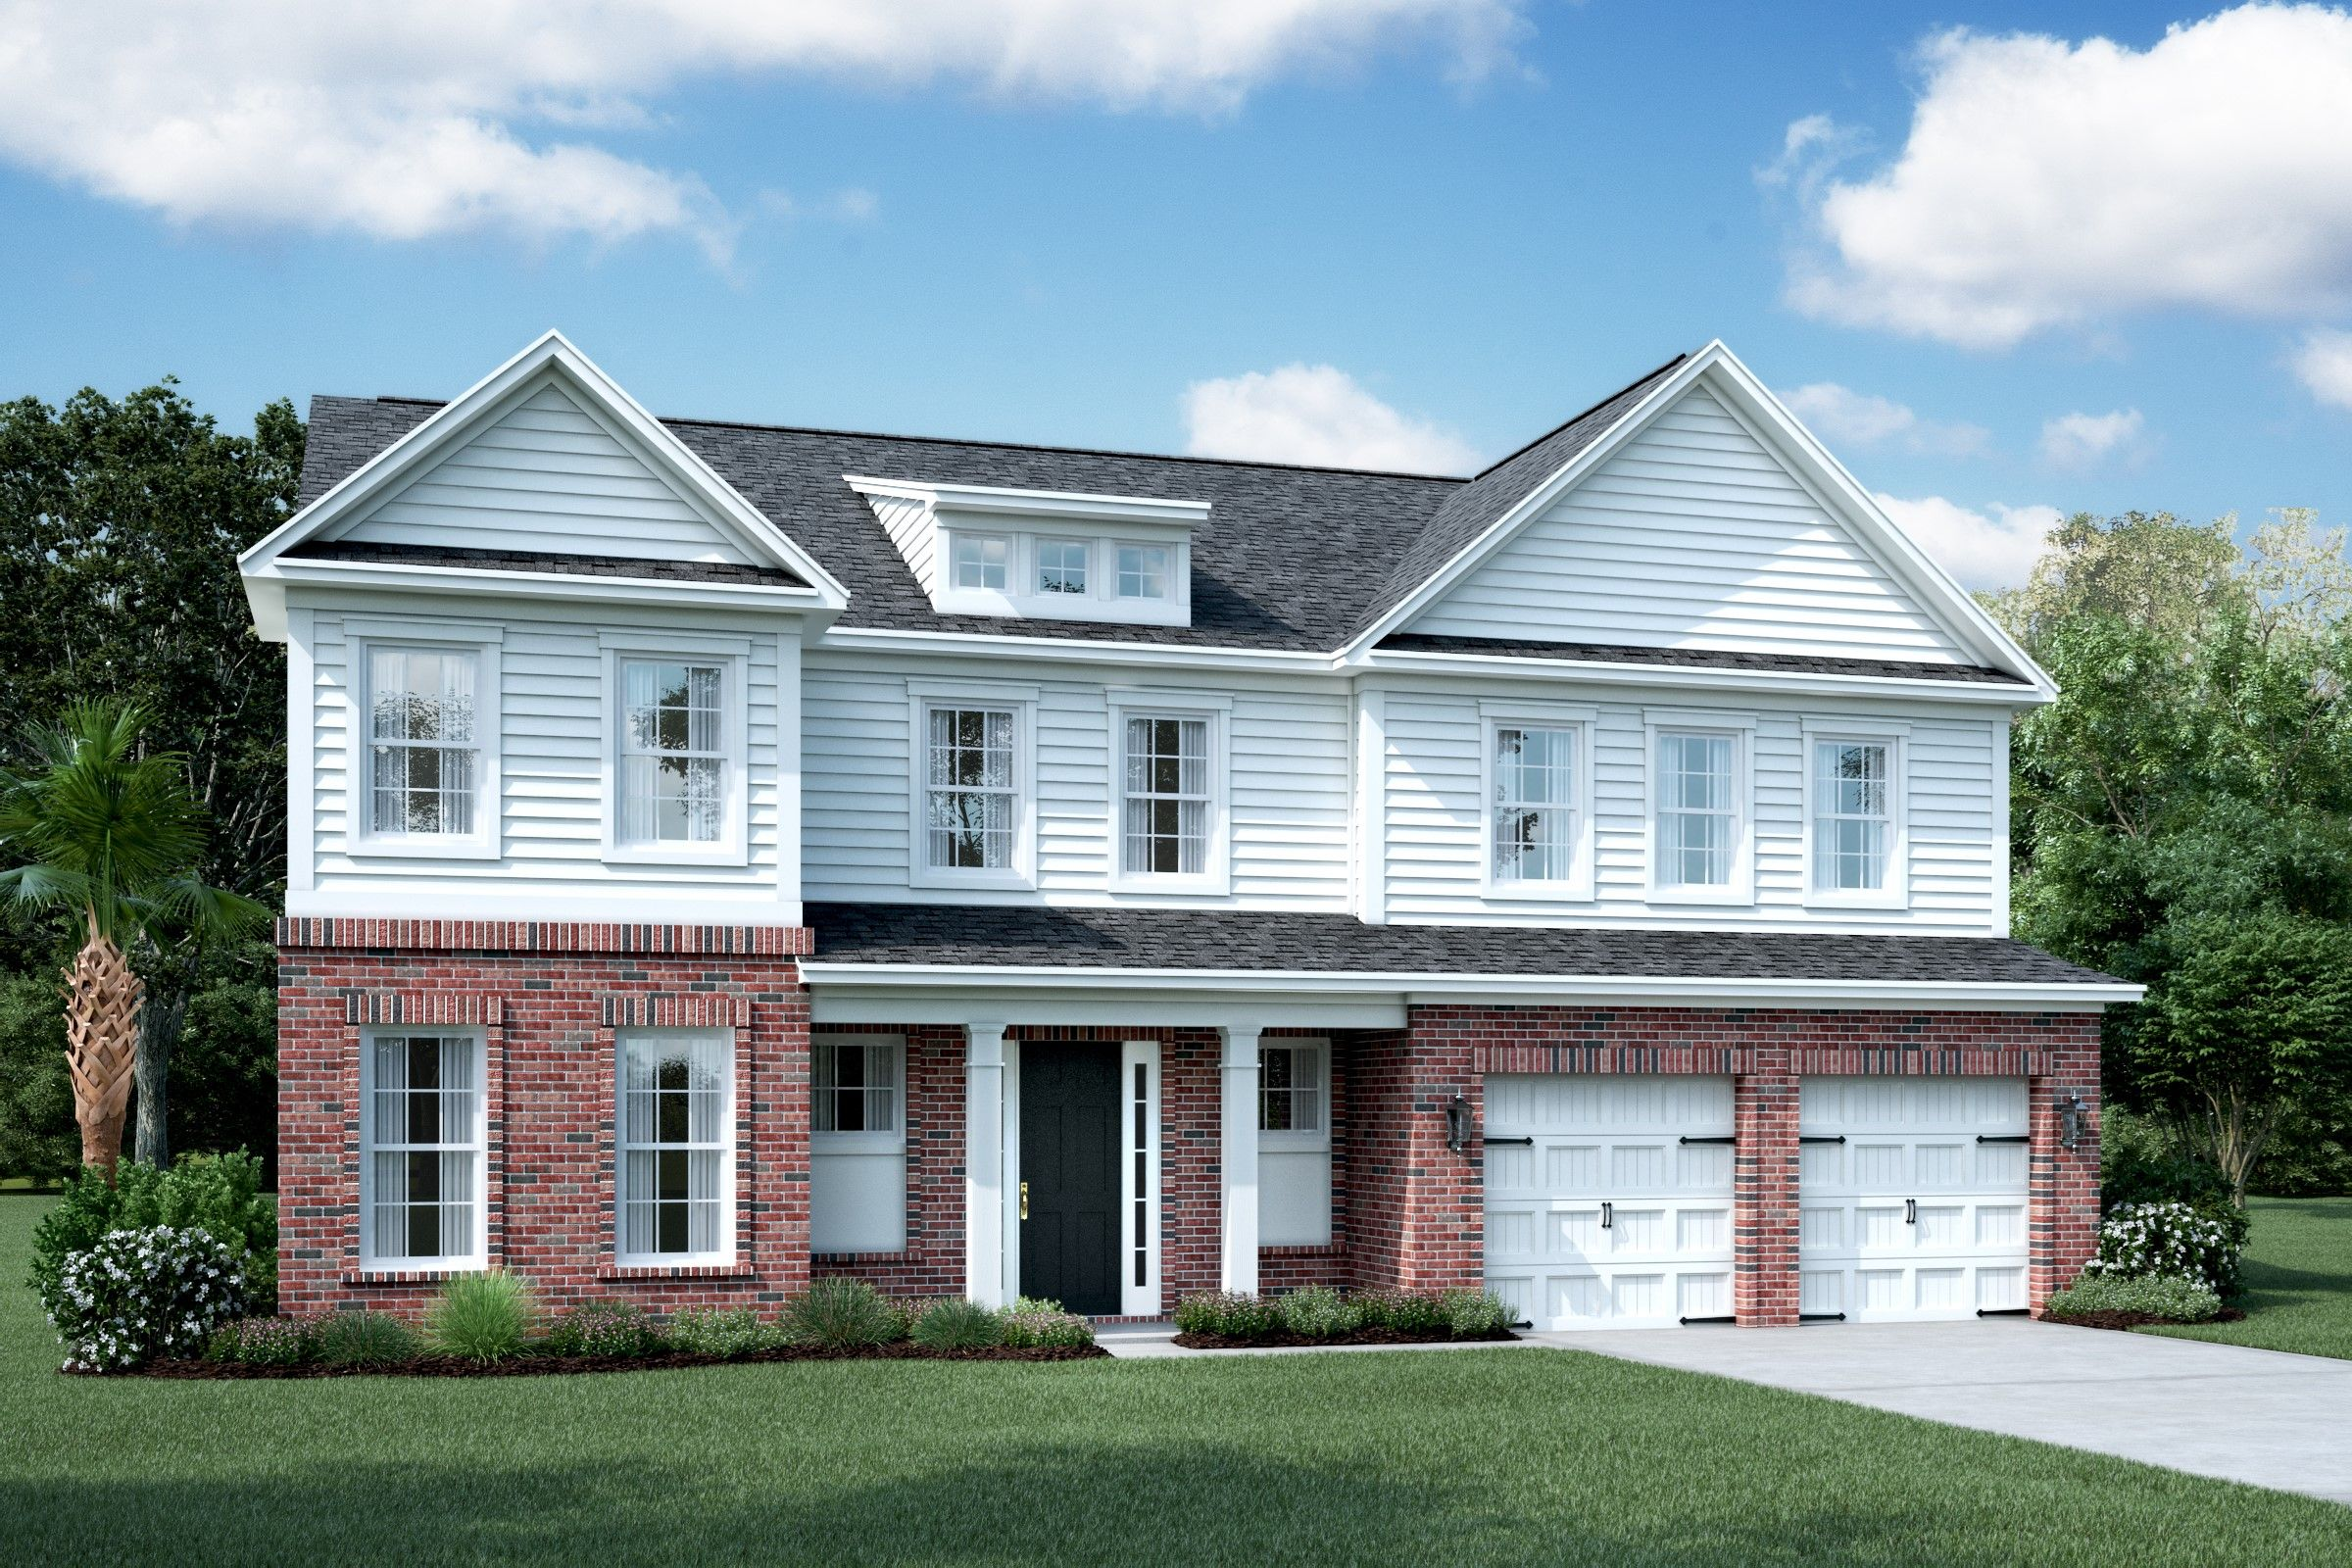 Single Family for Sale at Westbrook - Louisville - Grove Collection 4 Appletree Close Pooler, Georgia 31322 United States